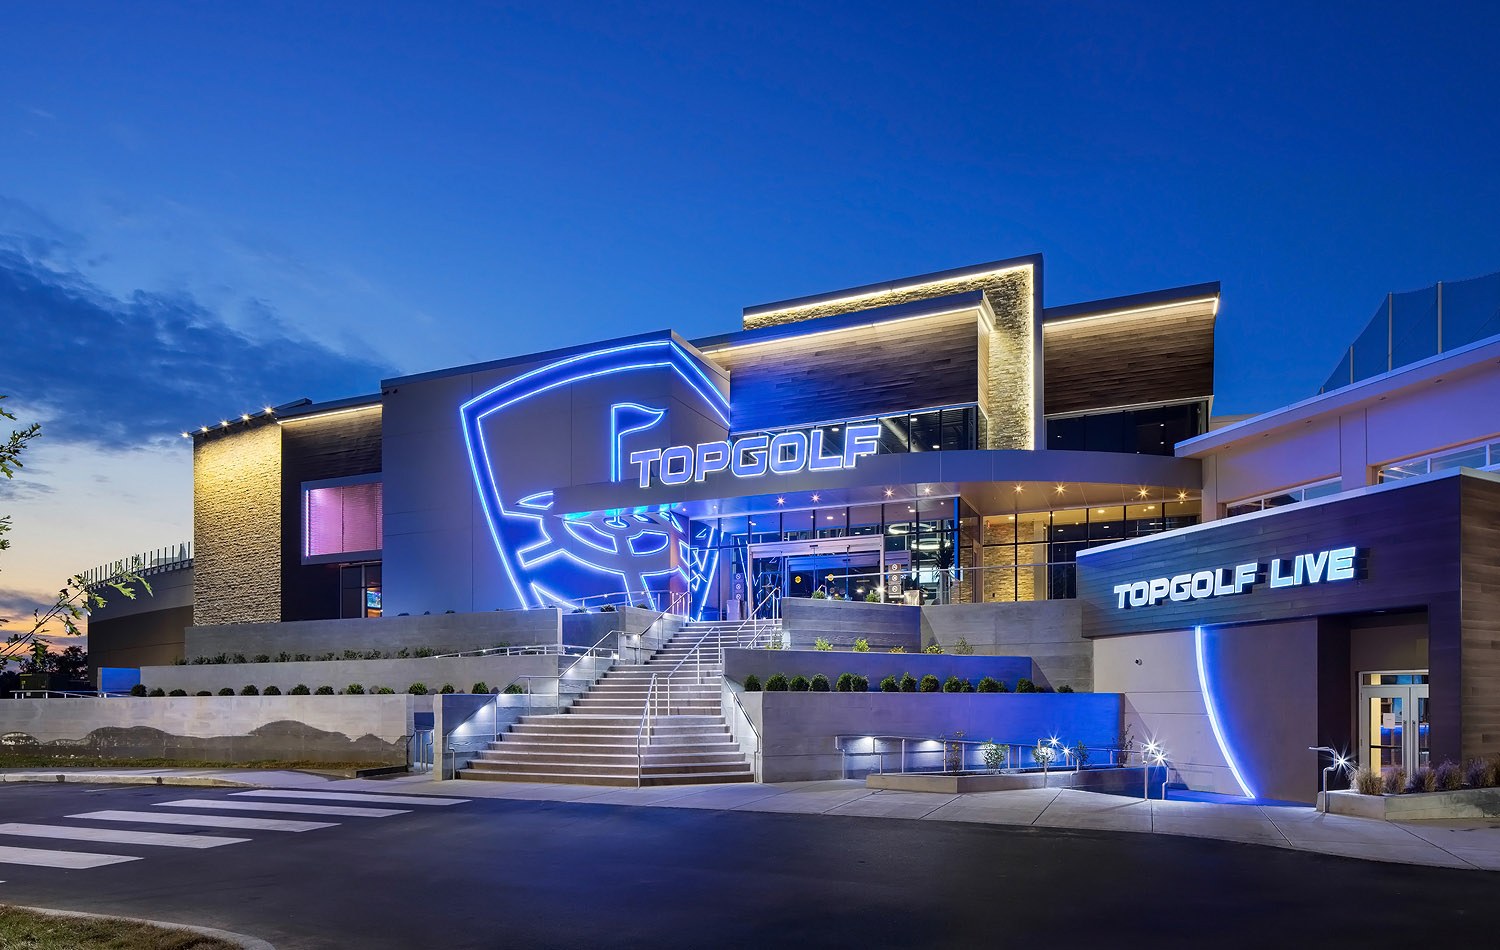 now leasing corporate housing Nashville destination guide top golf